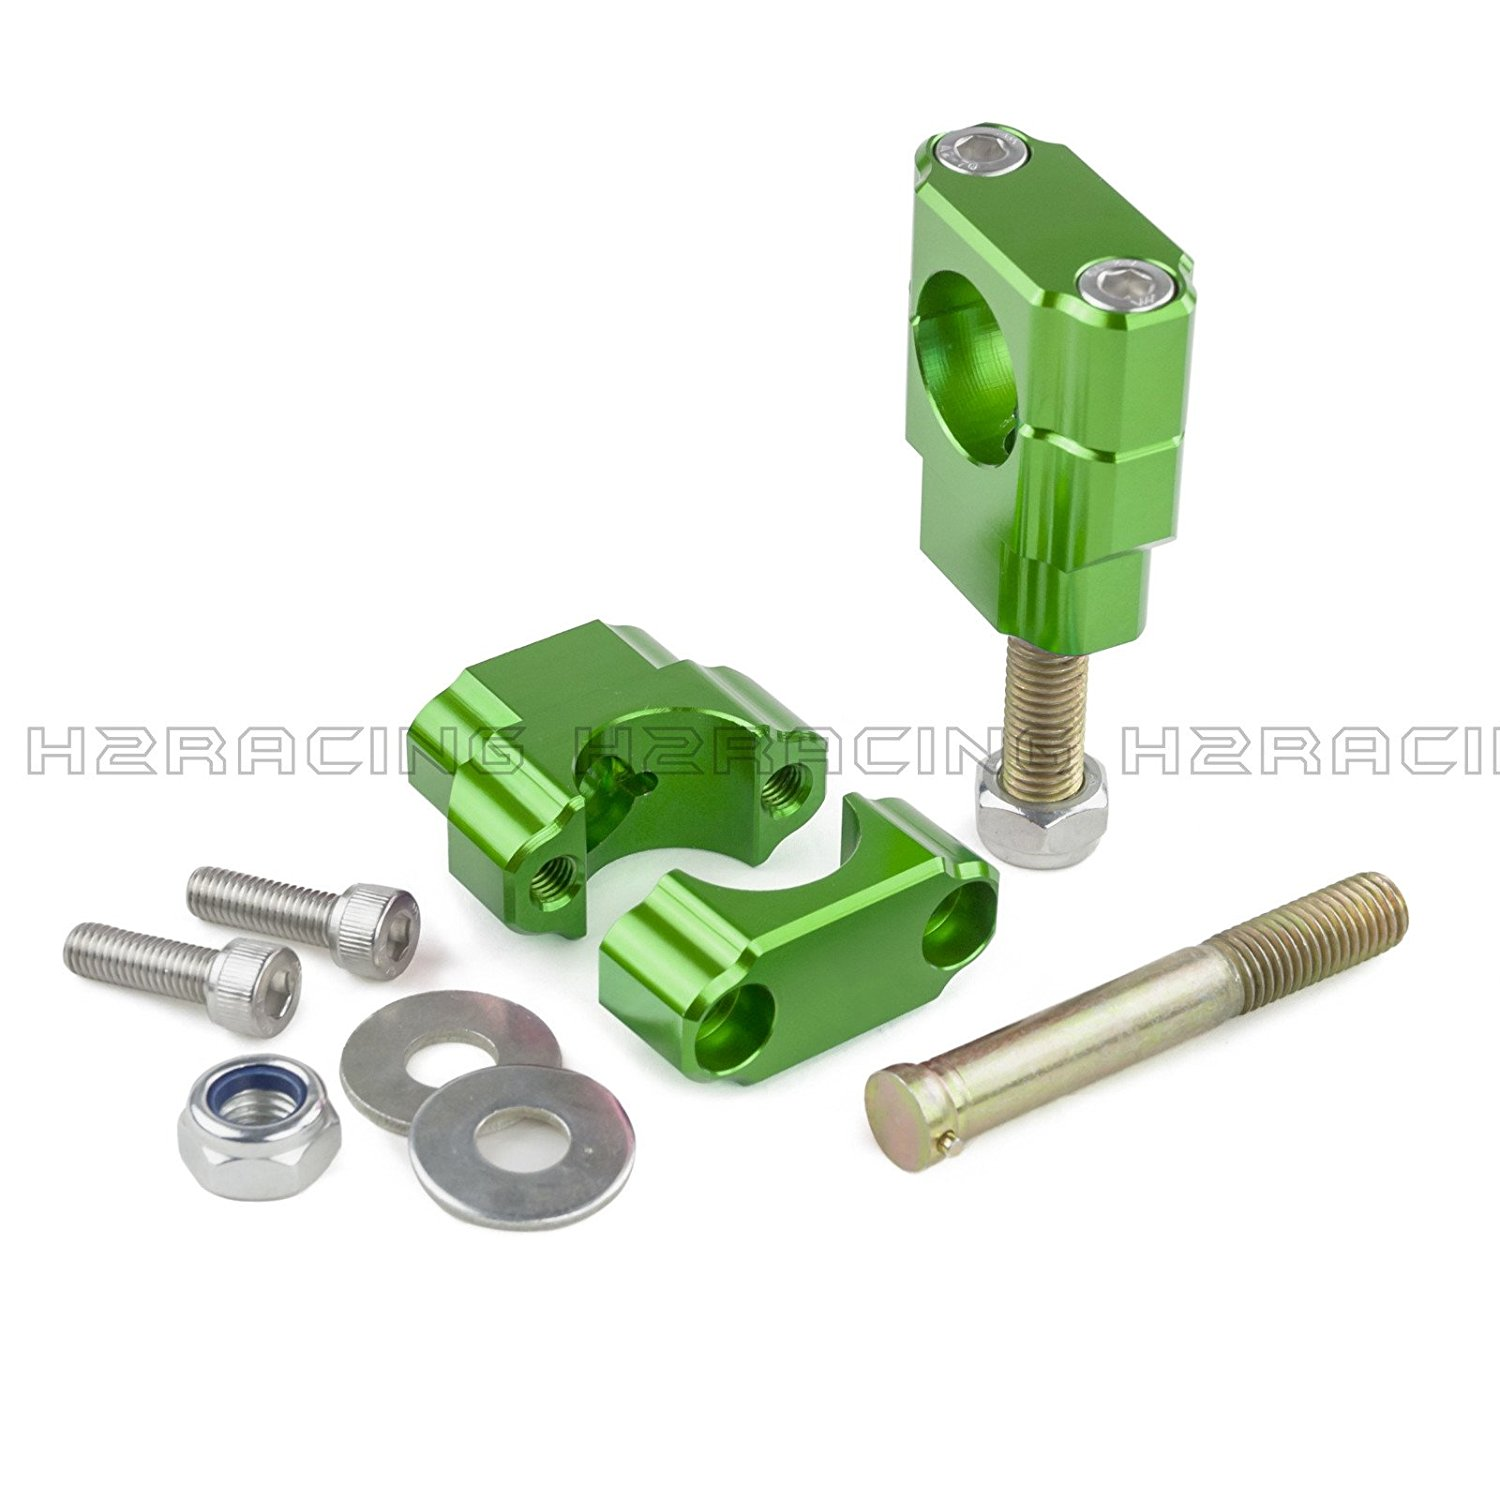 "H2RACING Green 1 1/8"" Bar Mounts Handlebar Riser Clamps for Honda CR125R 2000-2007 CRF250R/X 2004-2015 CRF450R 2002-2015 CRF450X 2005-2015 CR250R 1999-2007 CR500R 1988-2001 Suzuki RMZ250 2004-2006"